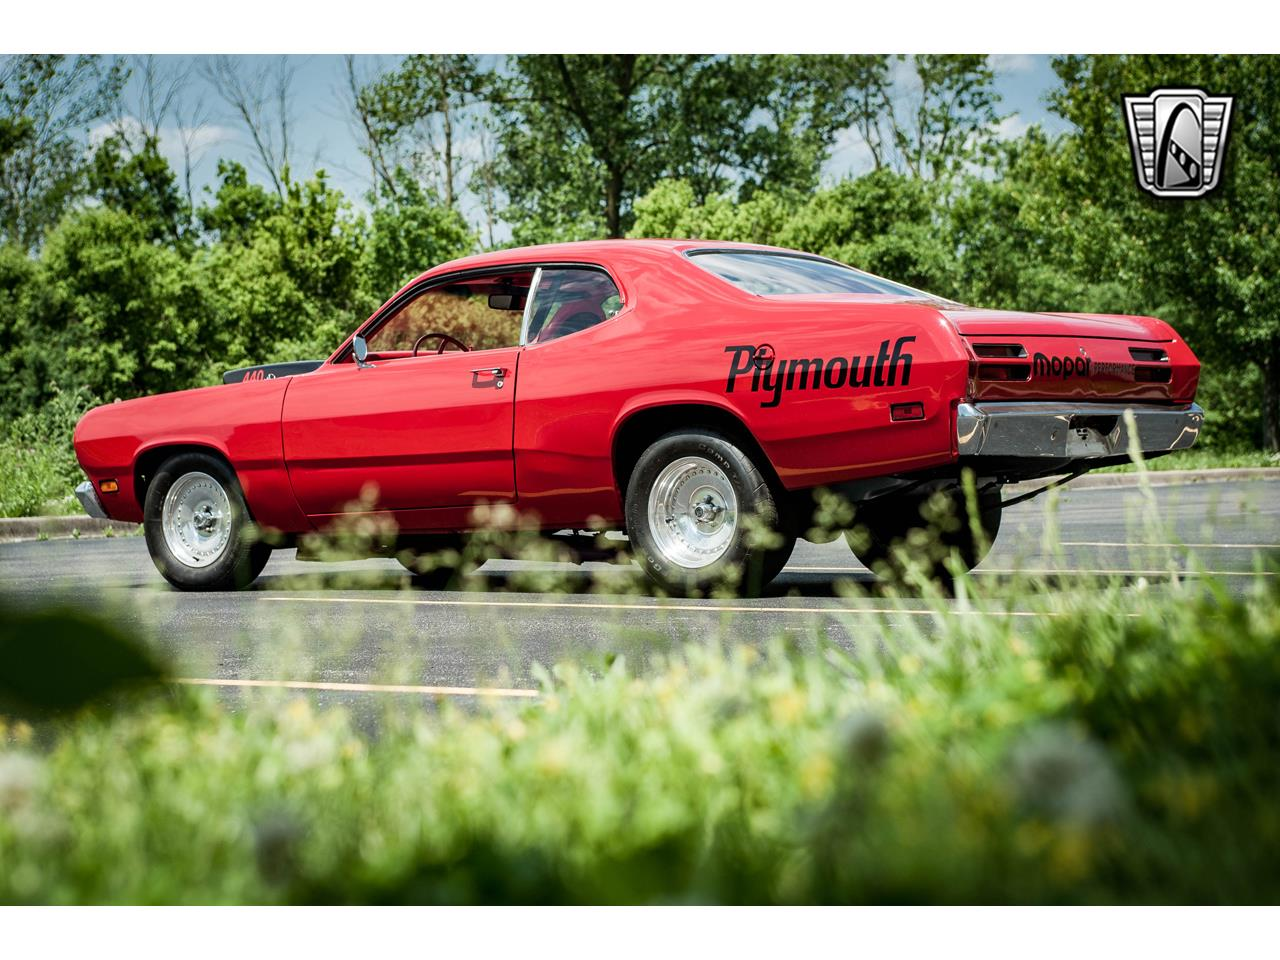 Large Picture of 1971 Plymouth Duster located in Illinois Offered by Gateway Classic Cars - St. Louis - QB9U